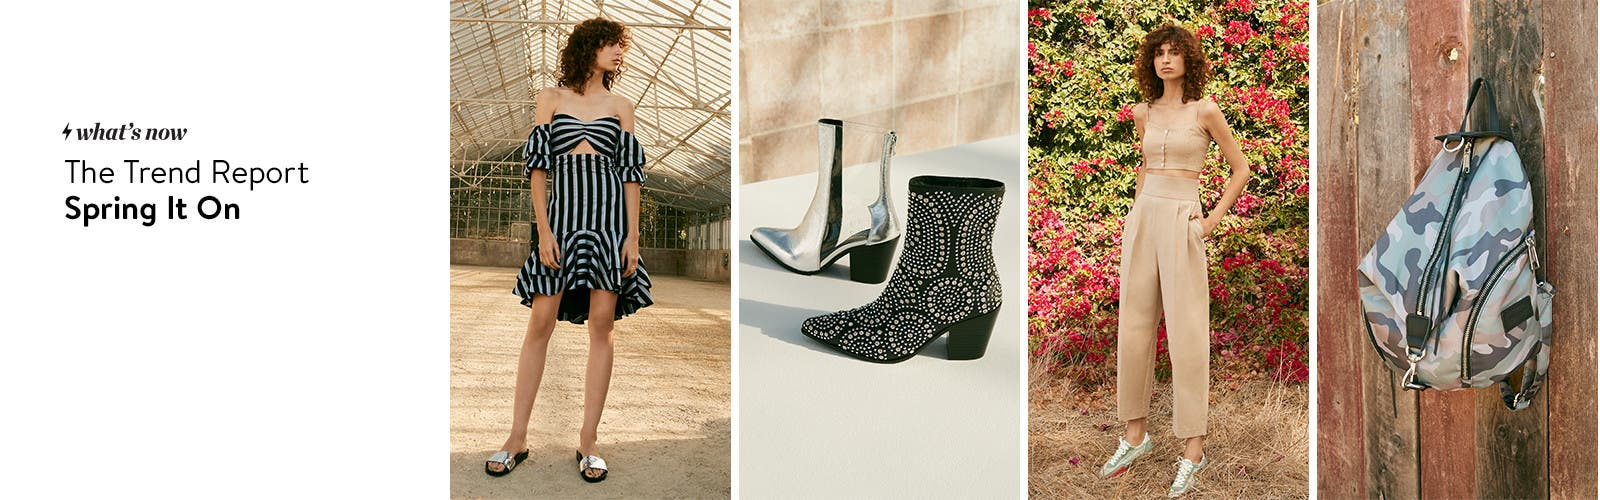 The trend report: spring it on.